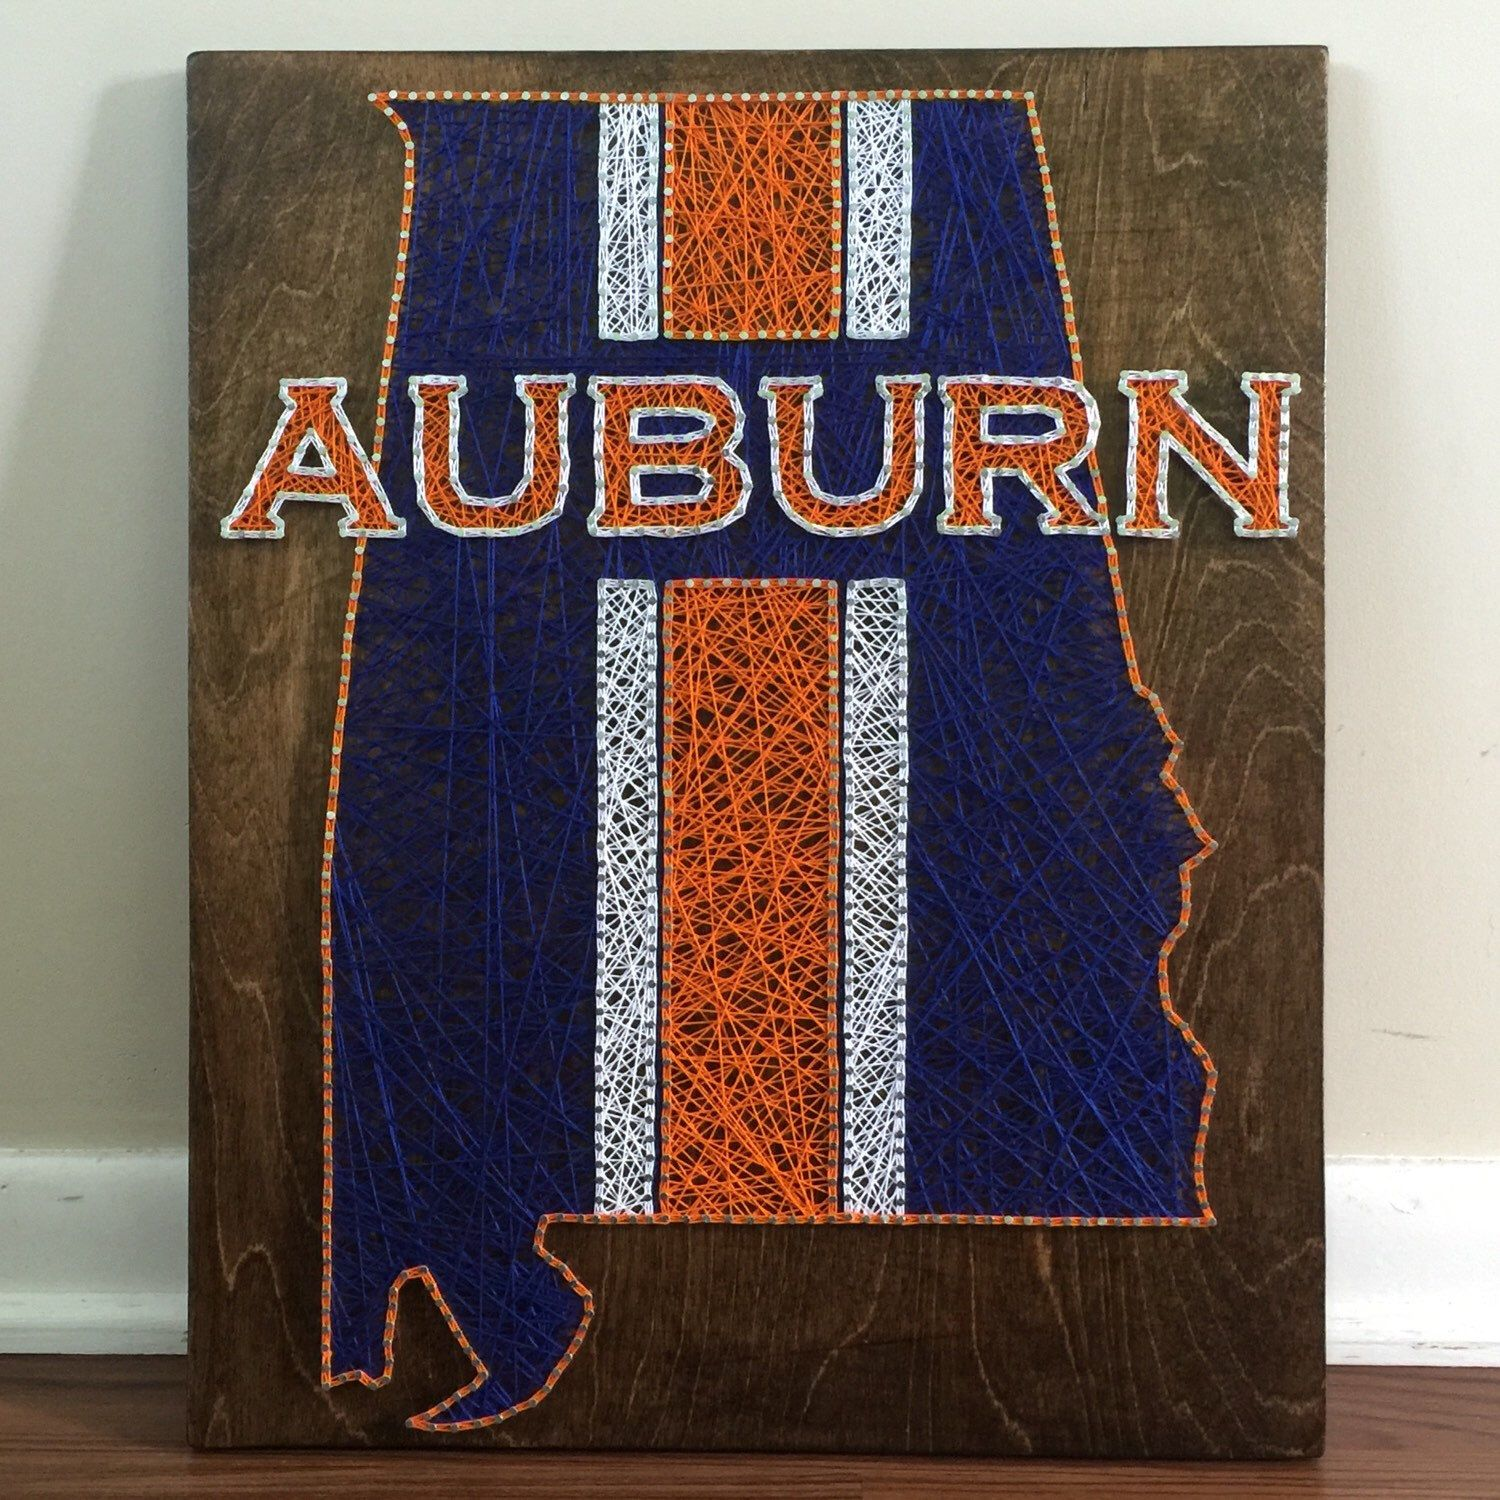 Auburn Tigers Auburn Football College Football String Crafts Diy Crafts Pallet Art Wood Art Art Ideas Tiger Girl